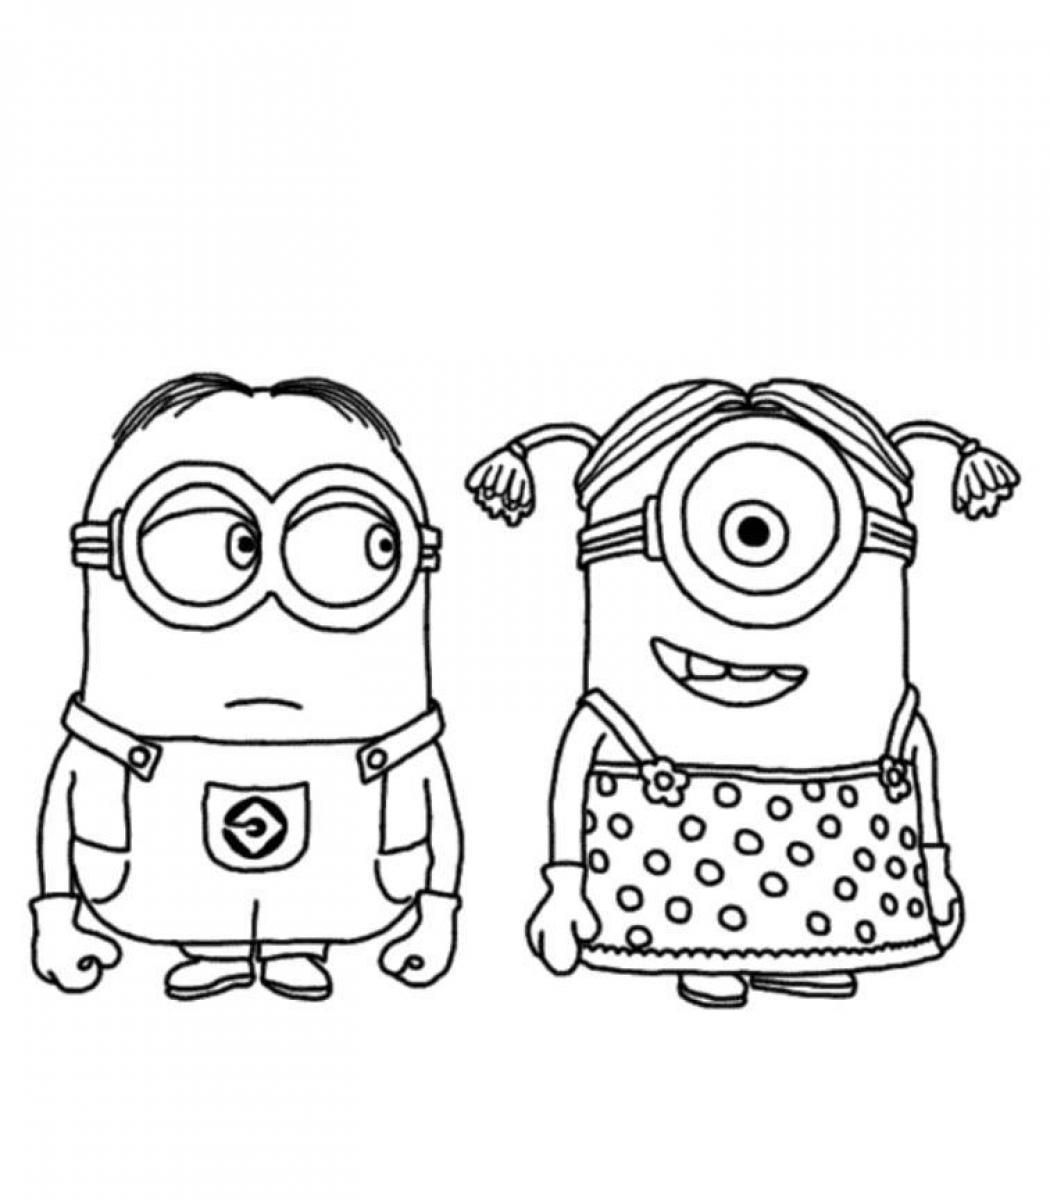 Minion Coloring Pages Printable Free Online For Adults Teenagers Kids Sheets